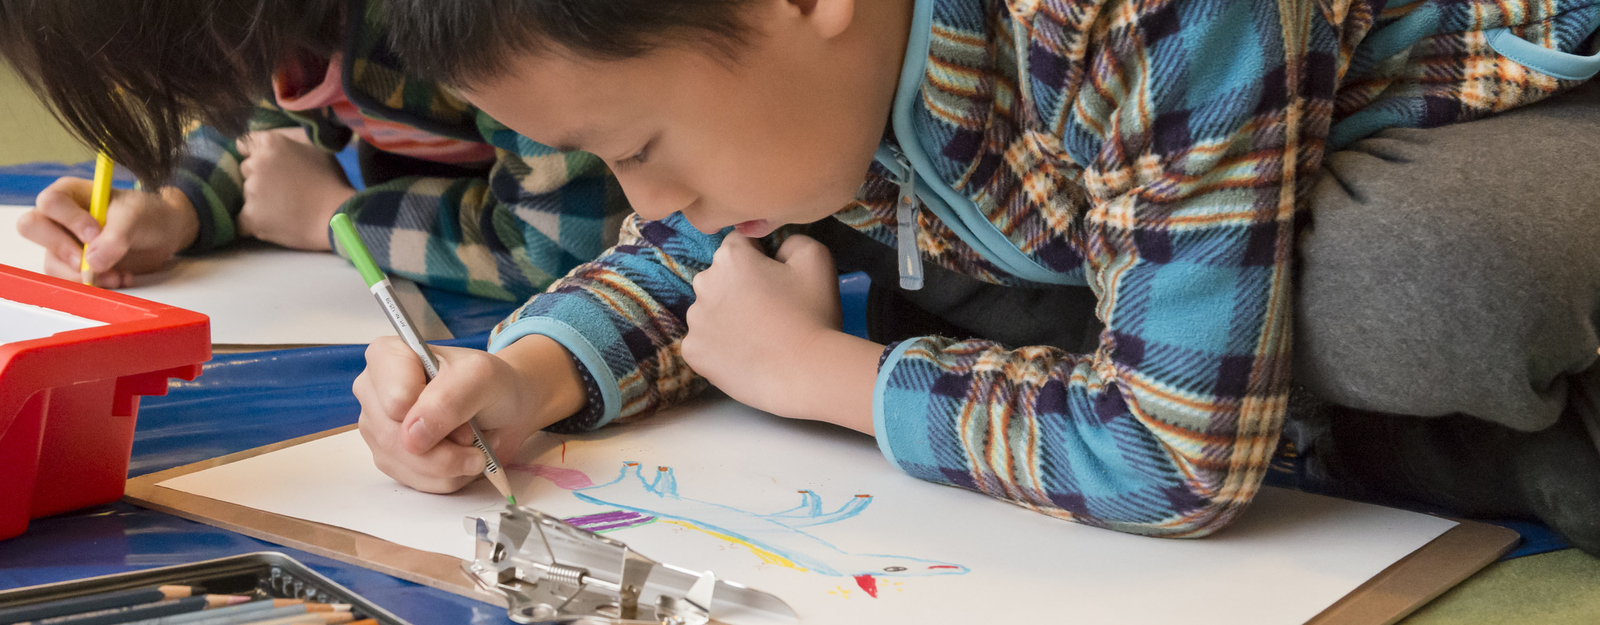 Child drawing with candles